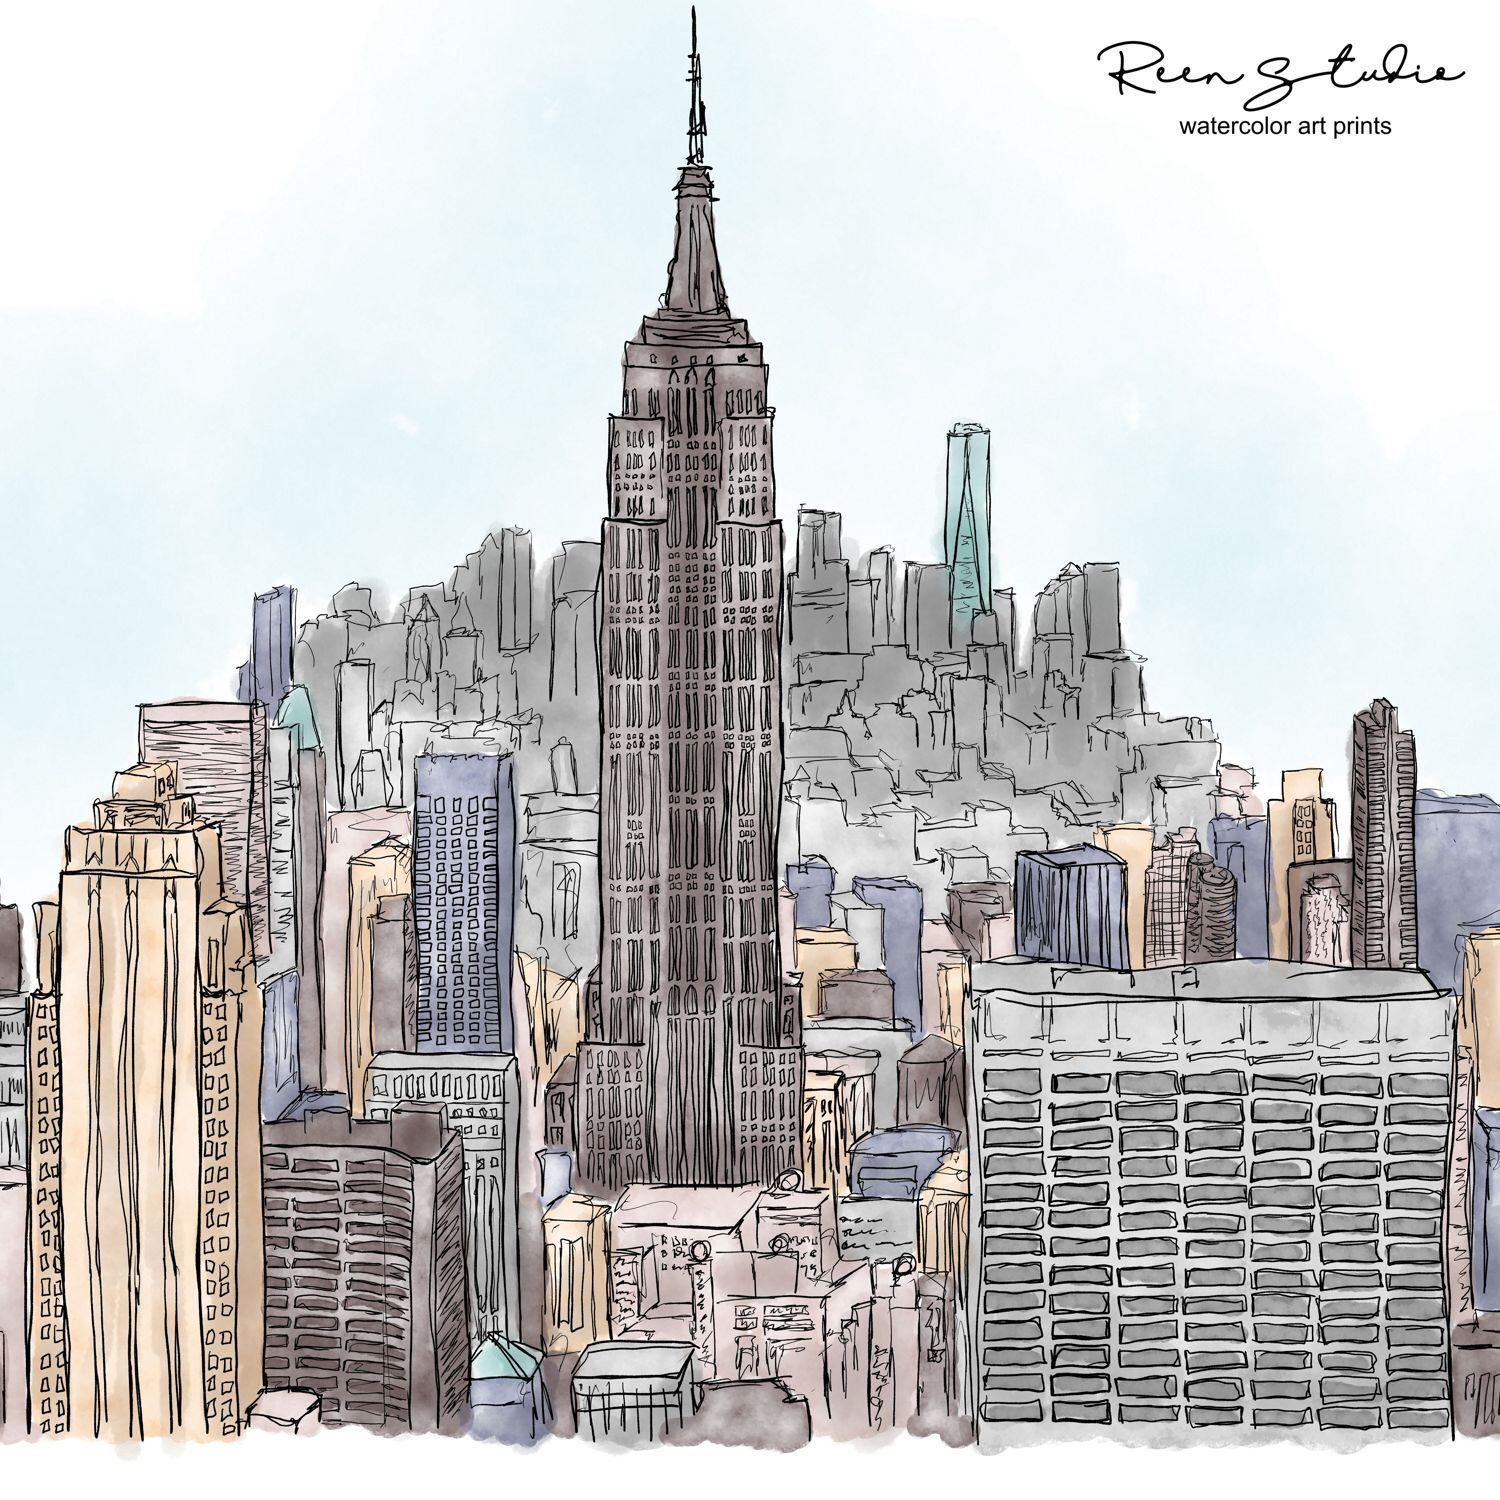 New York City Skyline Art Print - Digital Printable Art - Empire State Building Painting newyorkpainting #citypainting #buildingpainting #buildingdrawing #anniemusical #citylandscape #landscapedrawings #cityskylineart #citydrawing